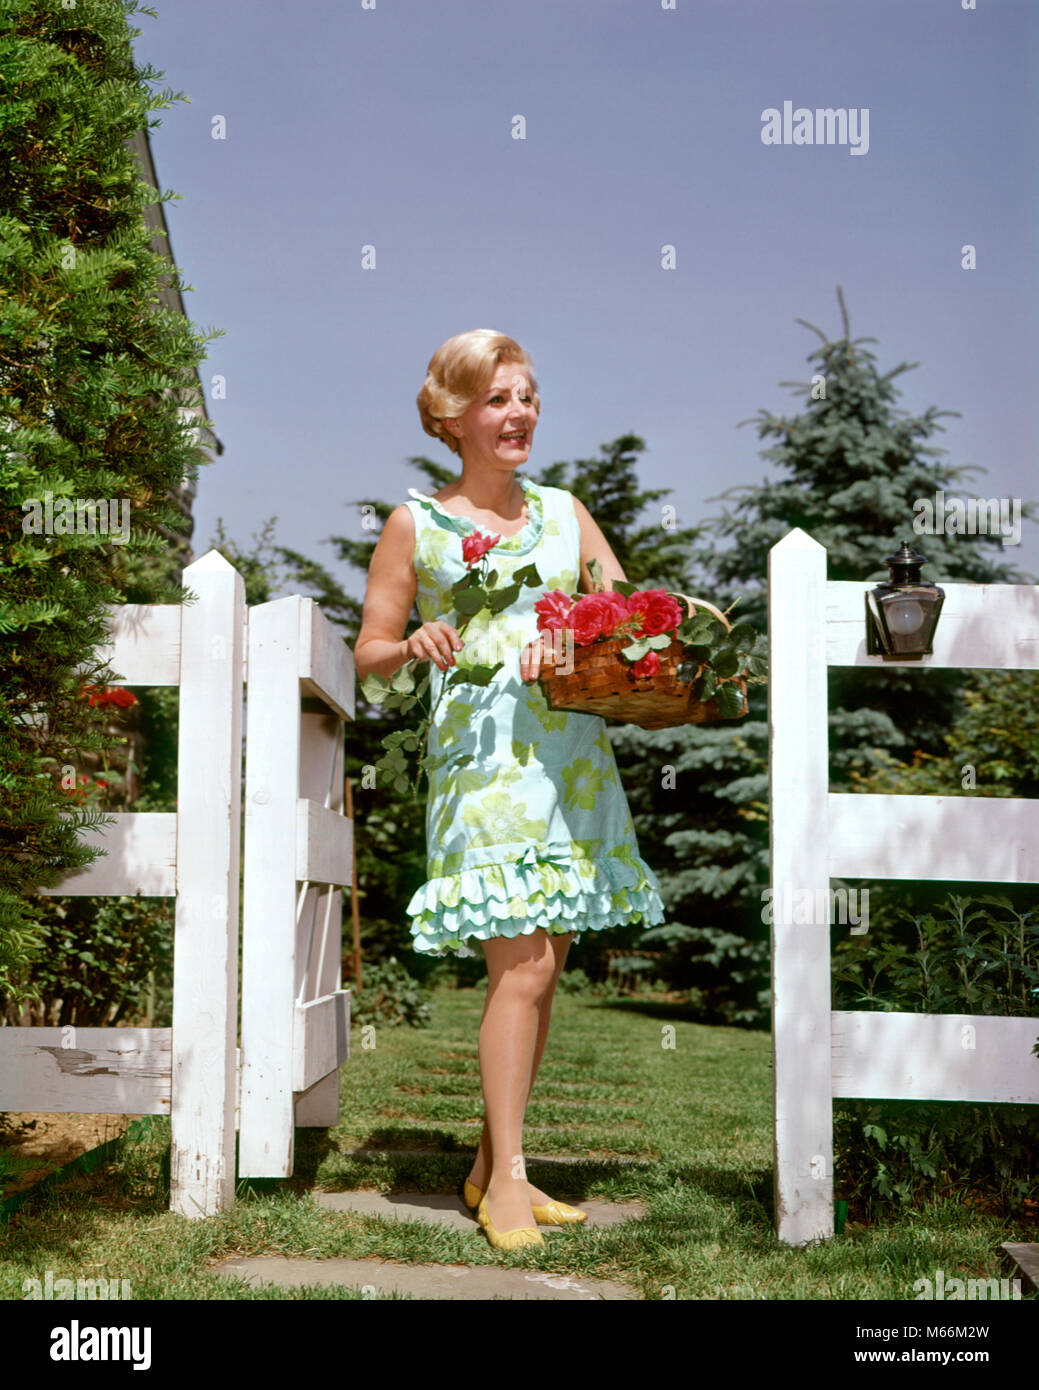 1960s MATURE WOMAN WEARING PRINT DRESS HOLDING BASKET OF RED ROSES FROM HER GARDEN - kf5689 HAR001 HARS BLOND PLAN Stock Photo